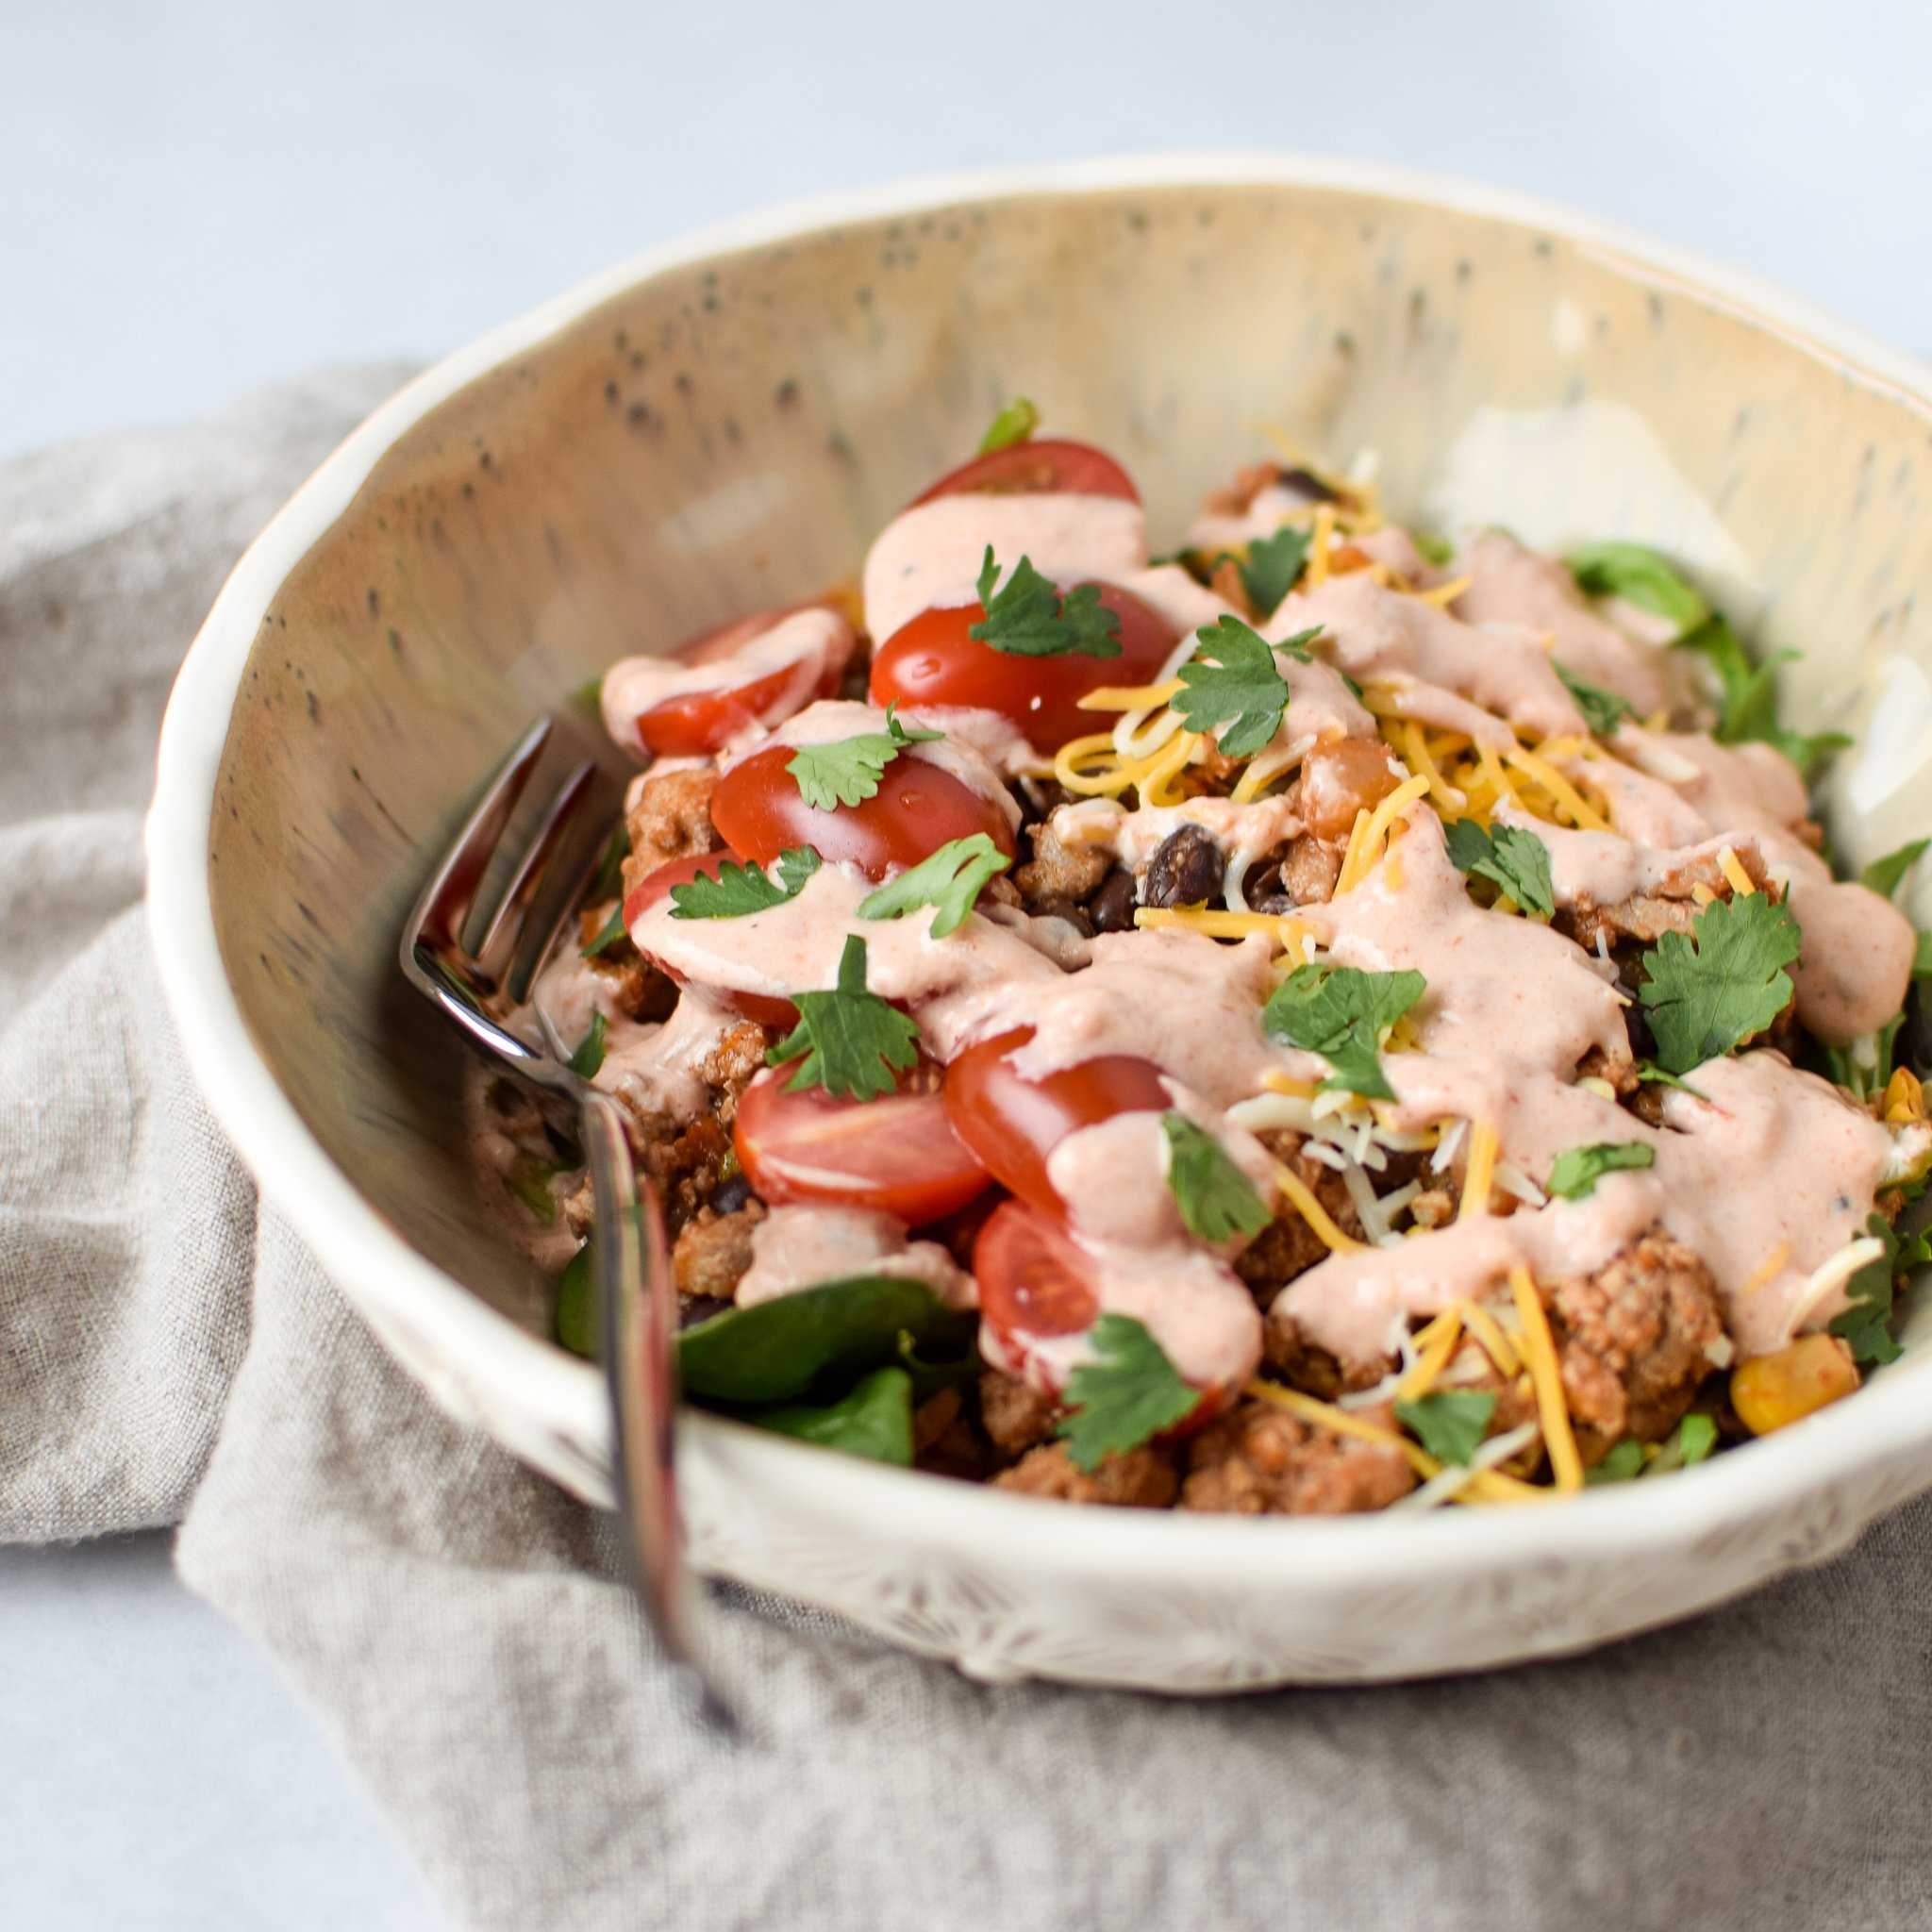 Meal Prep Turkey Taco Black Bean Salads - An easy recipe with ground turkey, black beans and veggies cooked in one pot! Easy meal prep right here! - ProjectMealPlan.com